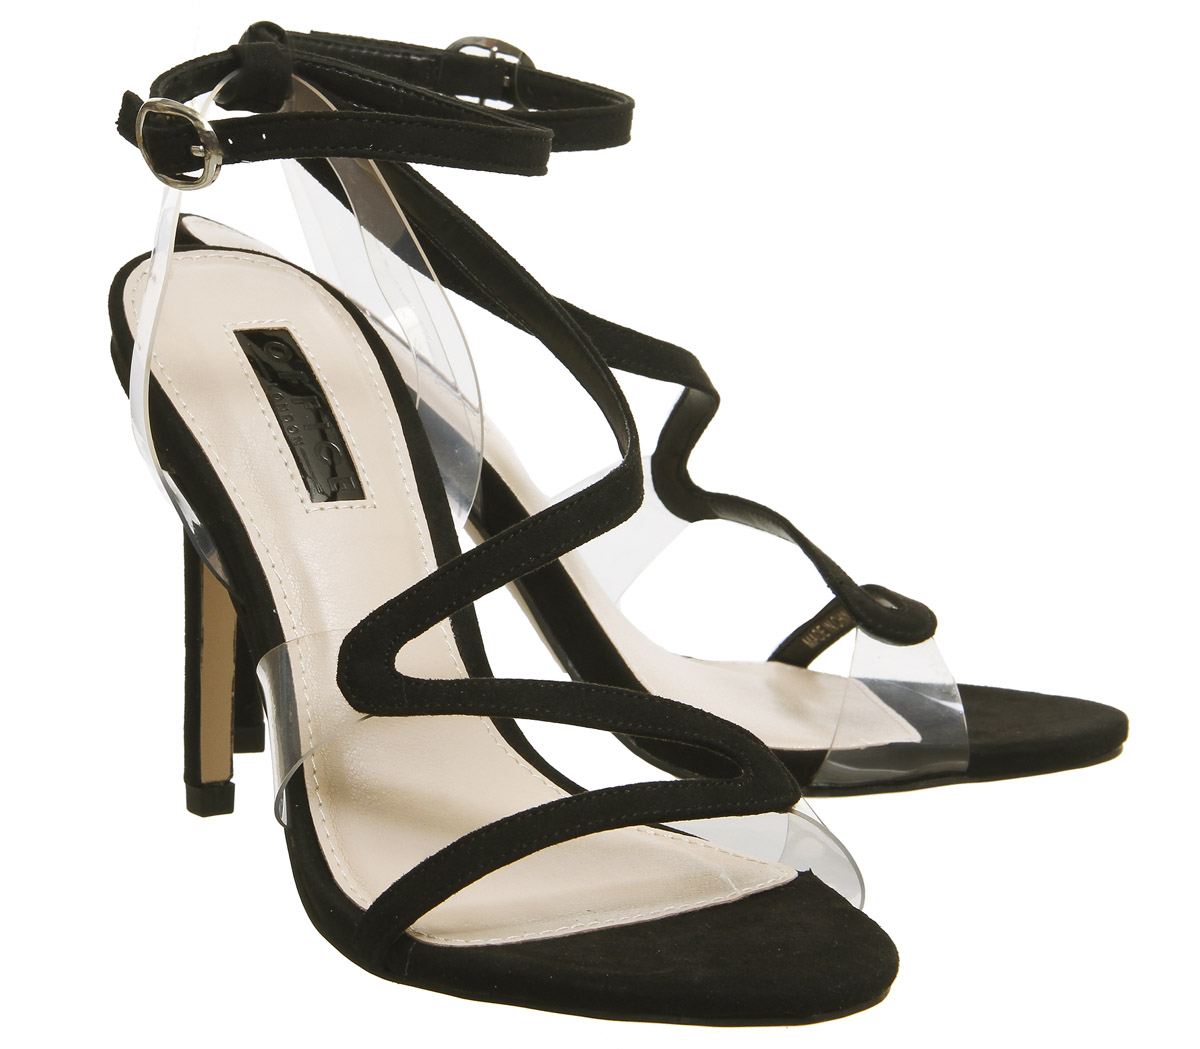 3e7fb106a30 Womens-Office-Hotel-Asymmetric-Strappy-Heels-Black-Heels thumbnail